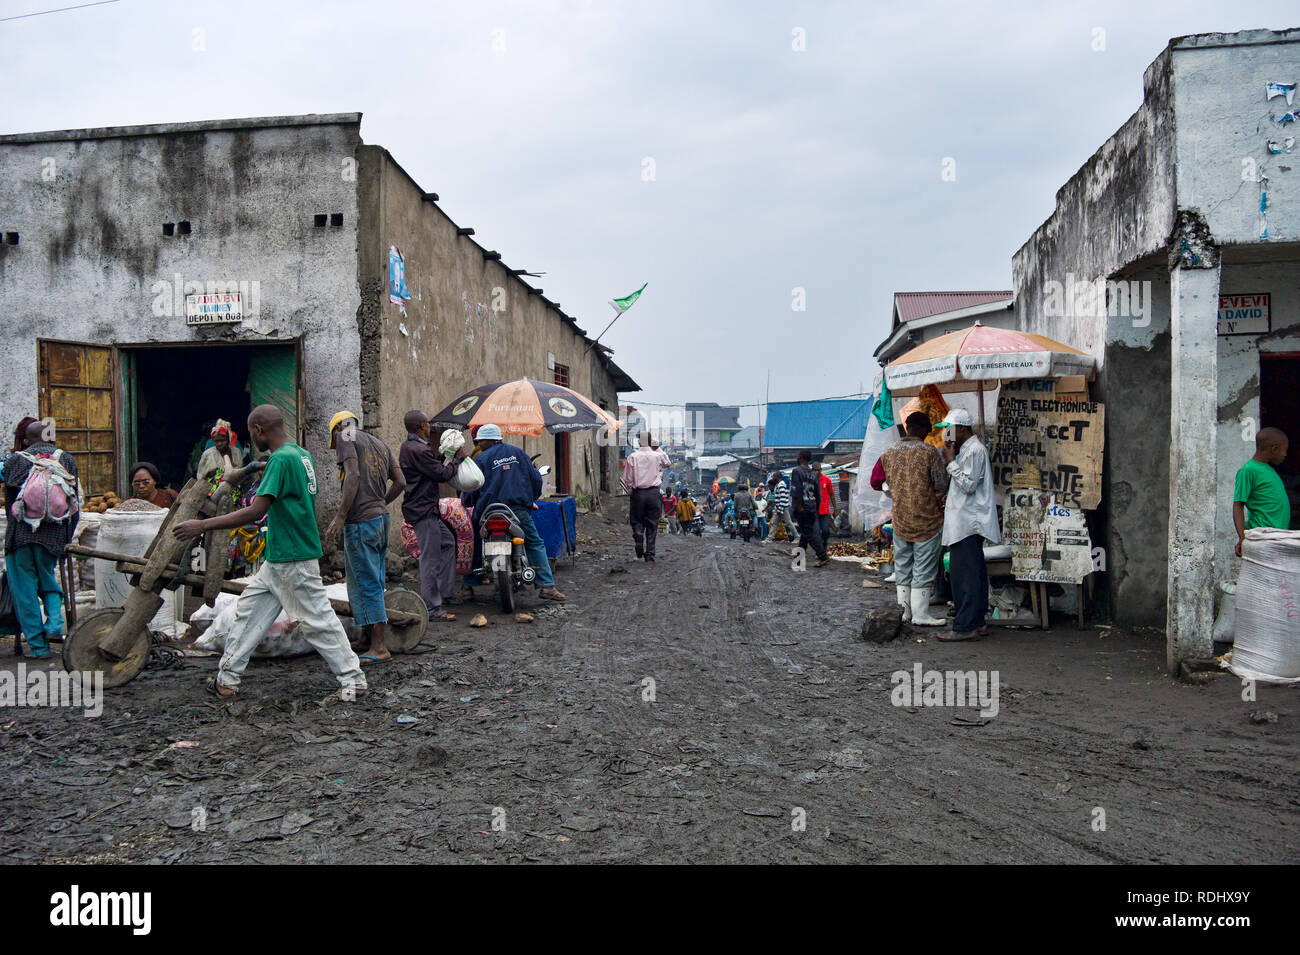 The roads in Goma, North Kivu, Democratic Republic of Congo are muddy, congested, and chaotic. - Stock Image